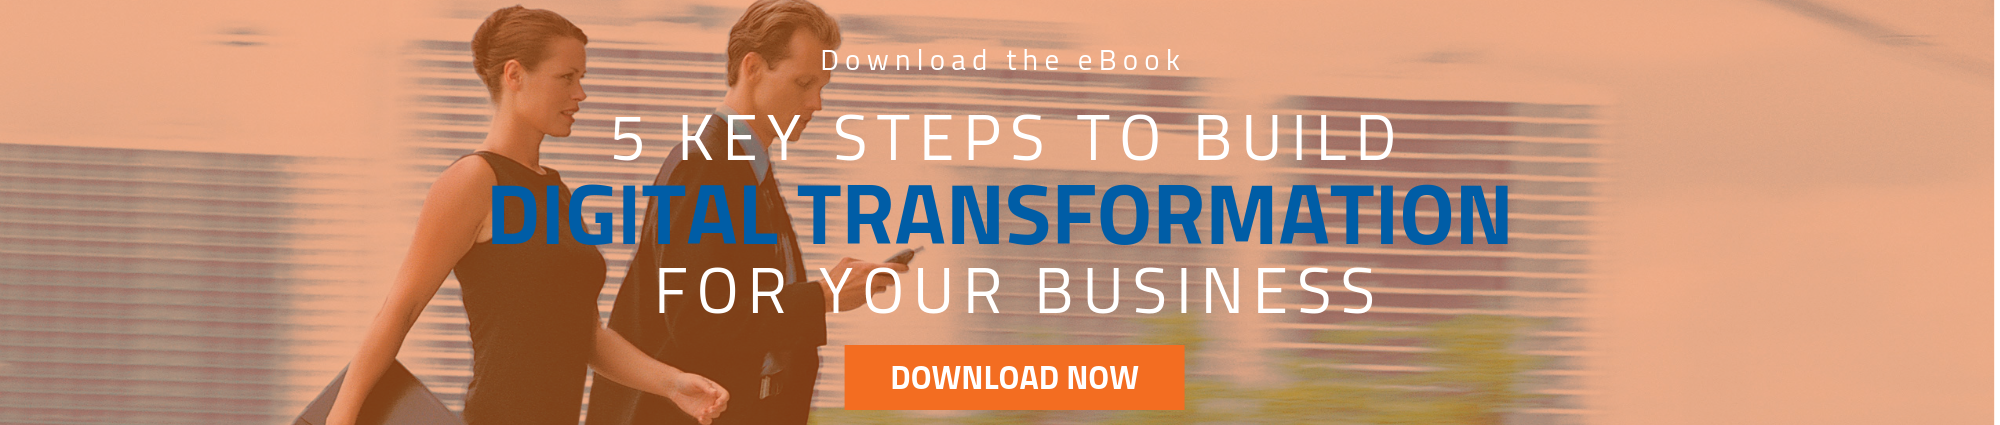 ebook: 5 Key Steps to Build Digital Transformation for Your Business